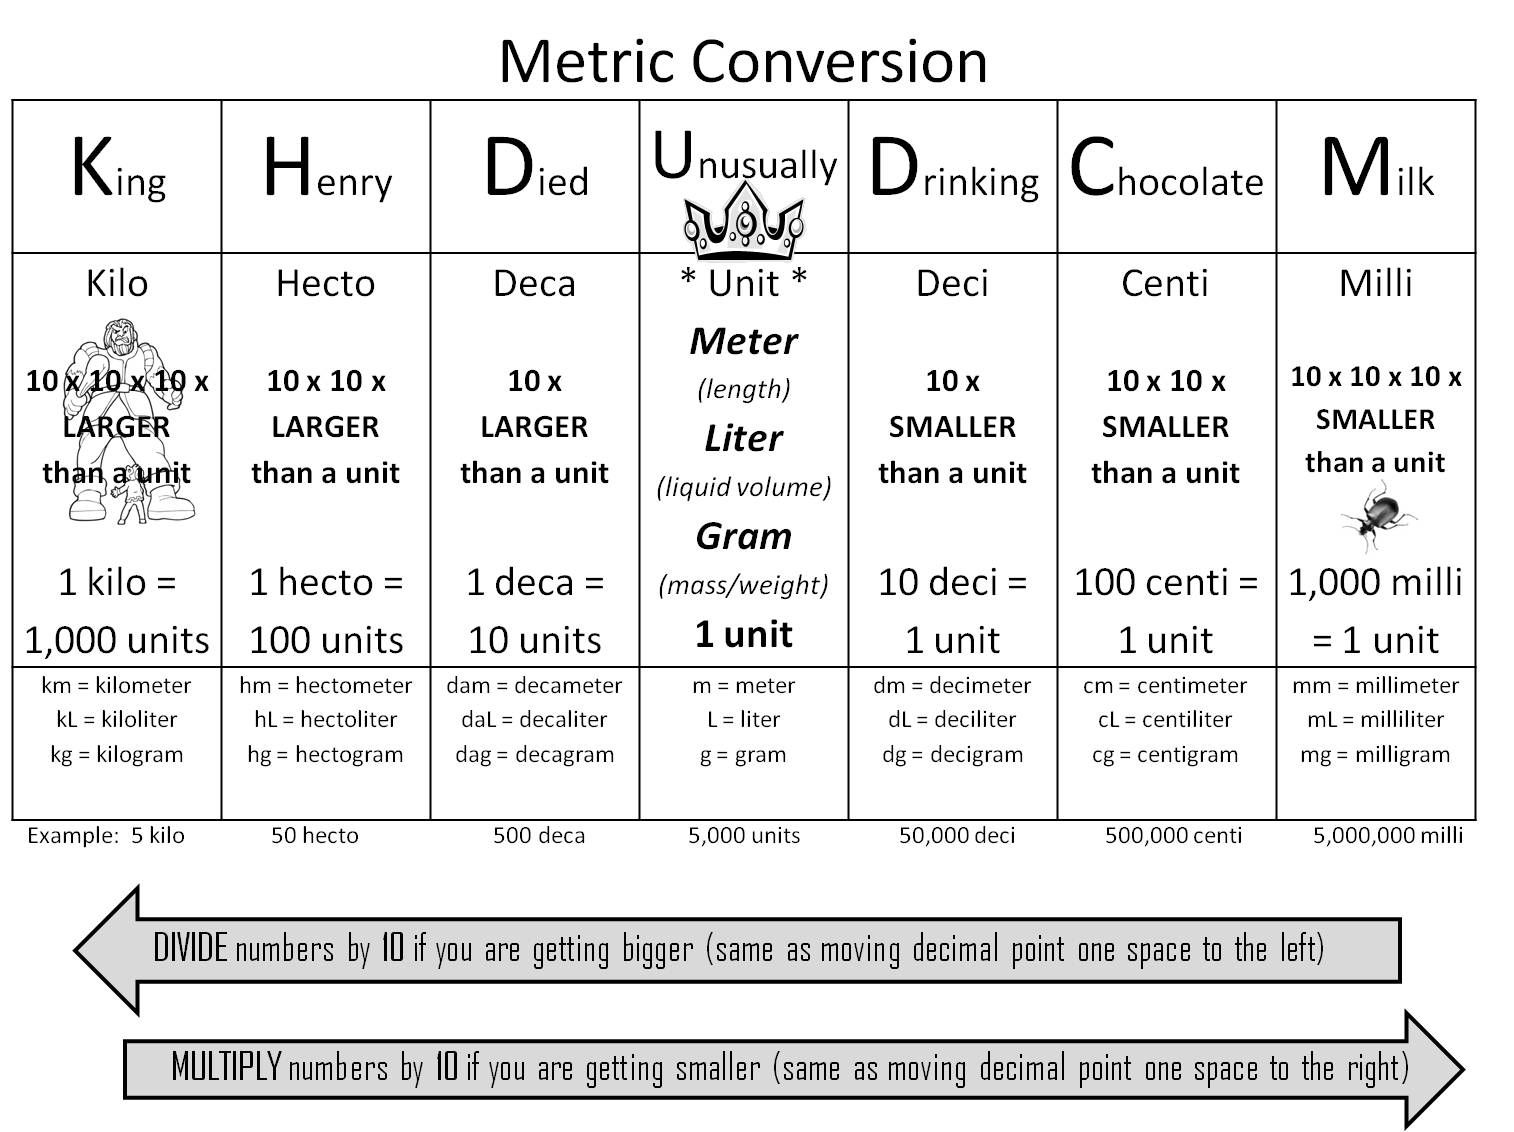 Strong Armor Math  Metric Conversion Trick  Educating My Kids